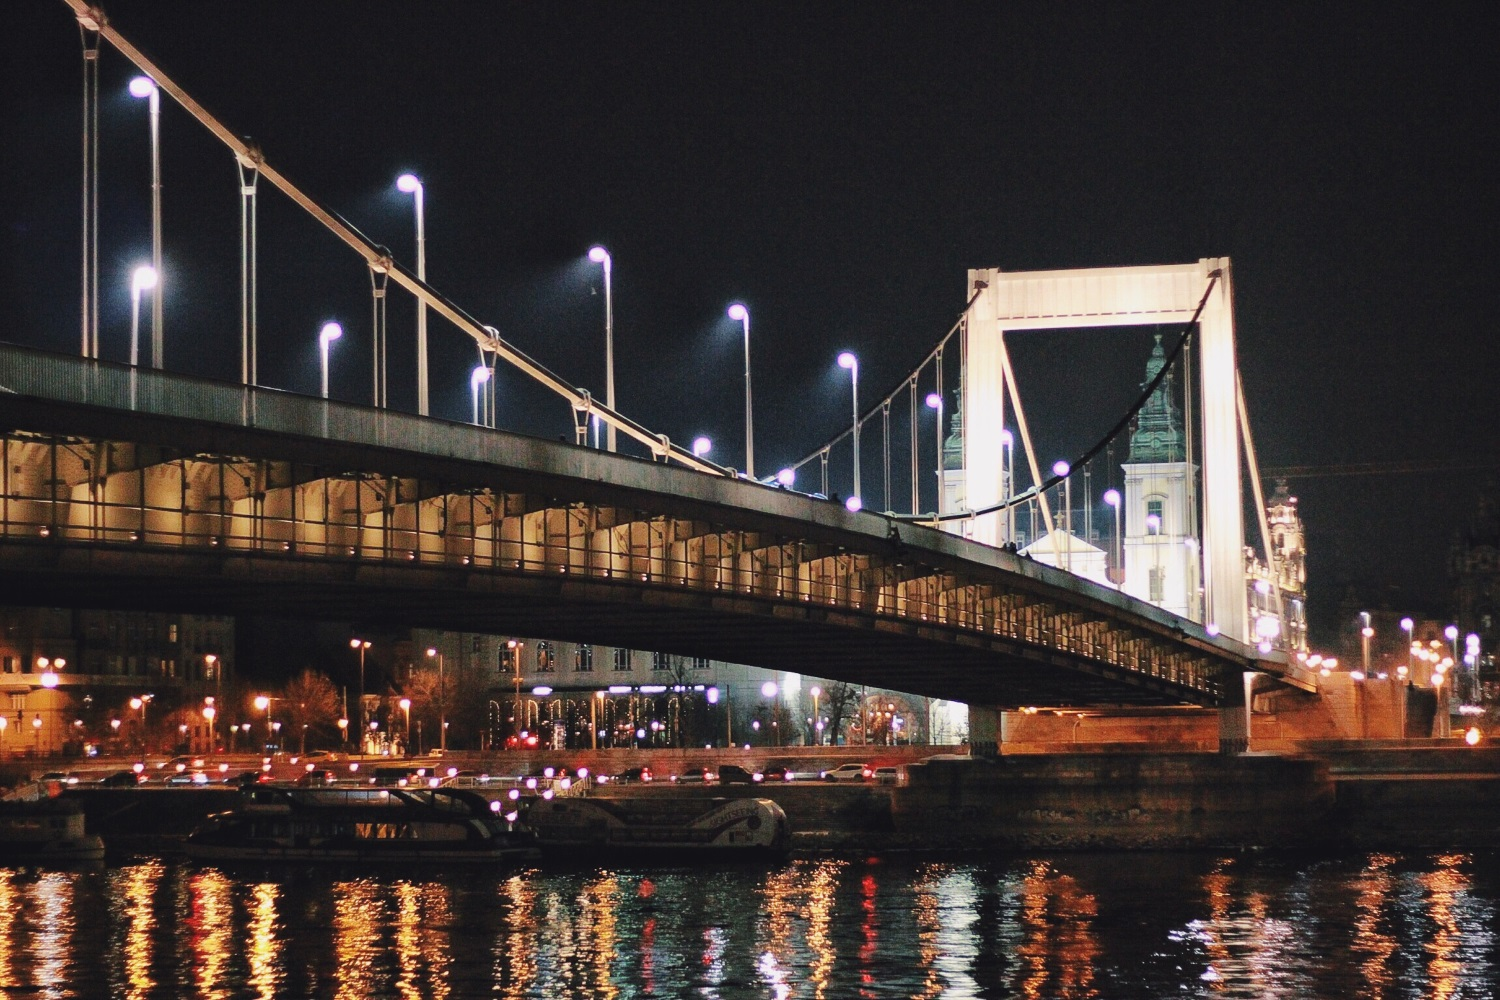 lifesthayle-budapest-under-elisabeth-brigde-at-night.JPG